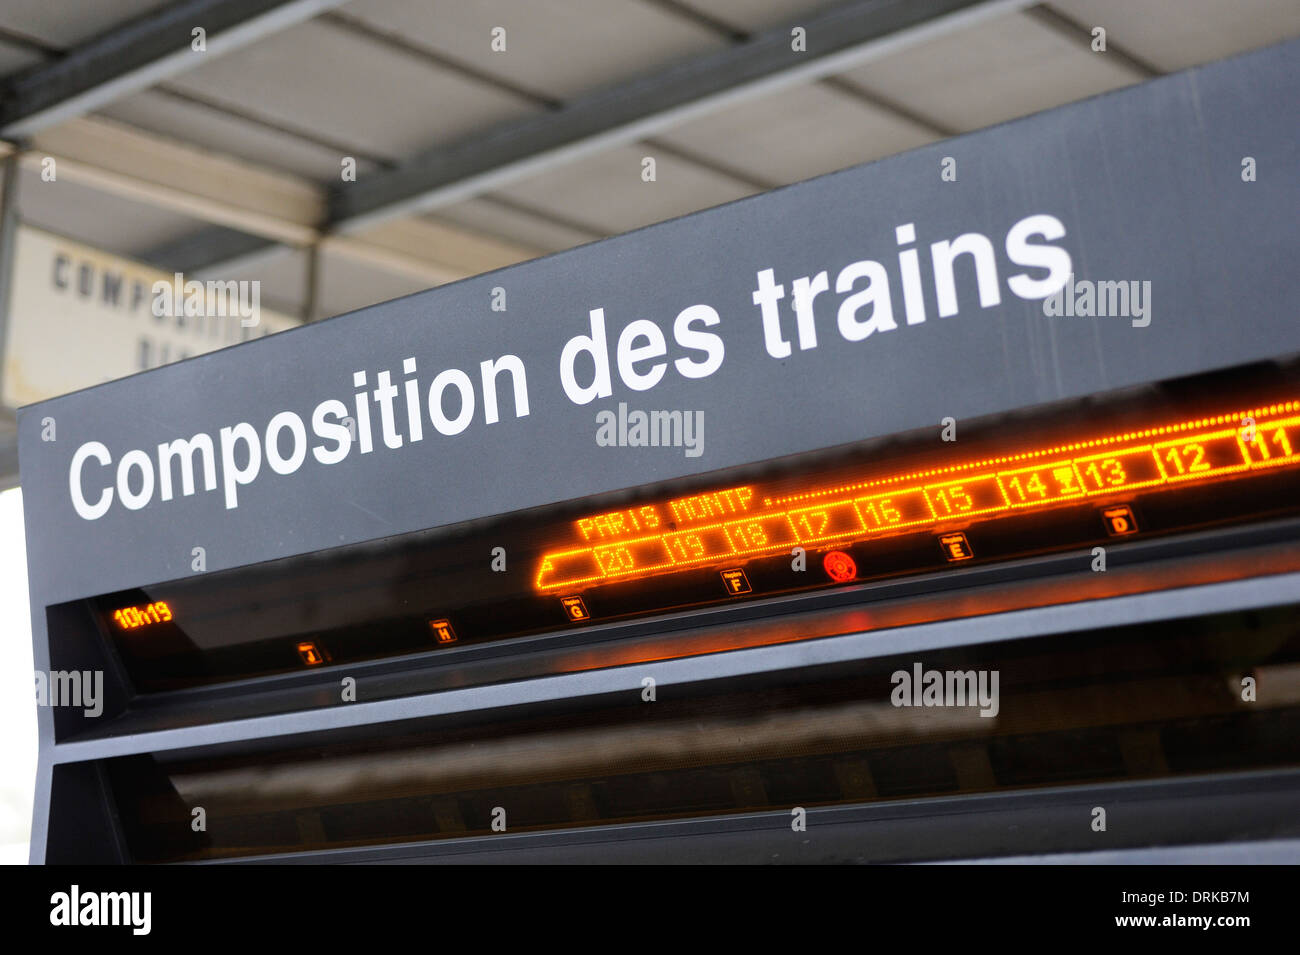 Stock Photo of train platform sign in France - Stock Image